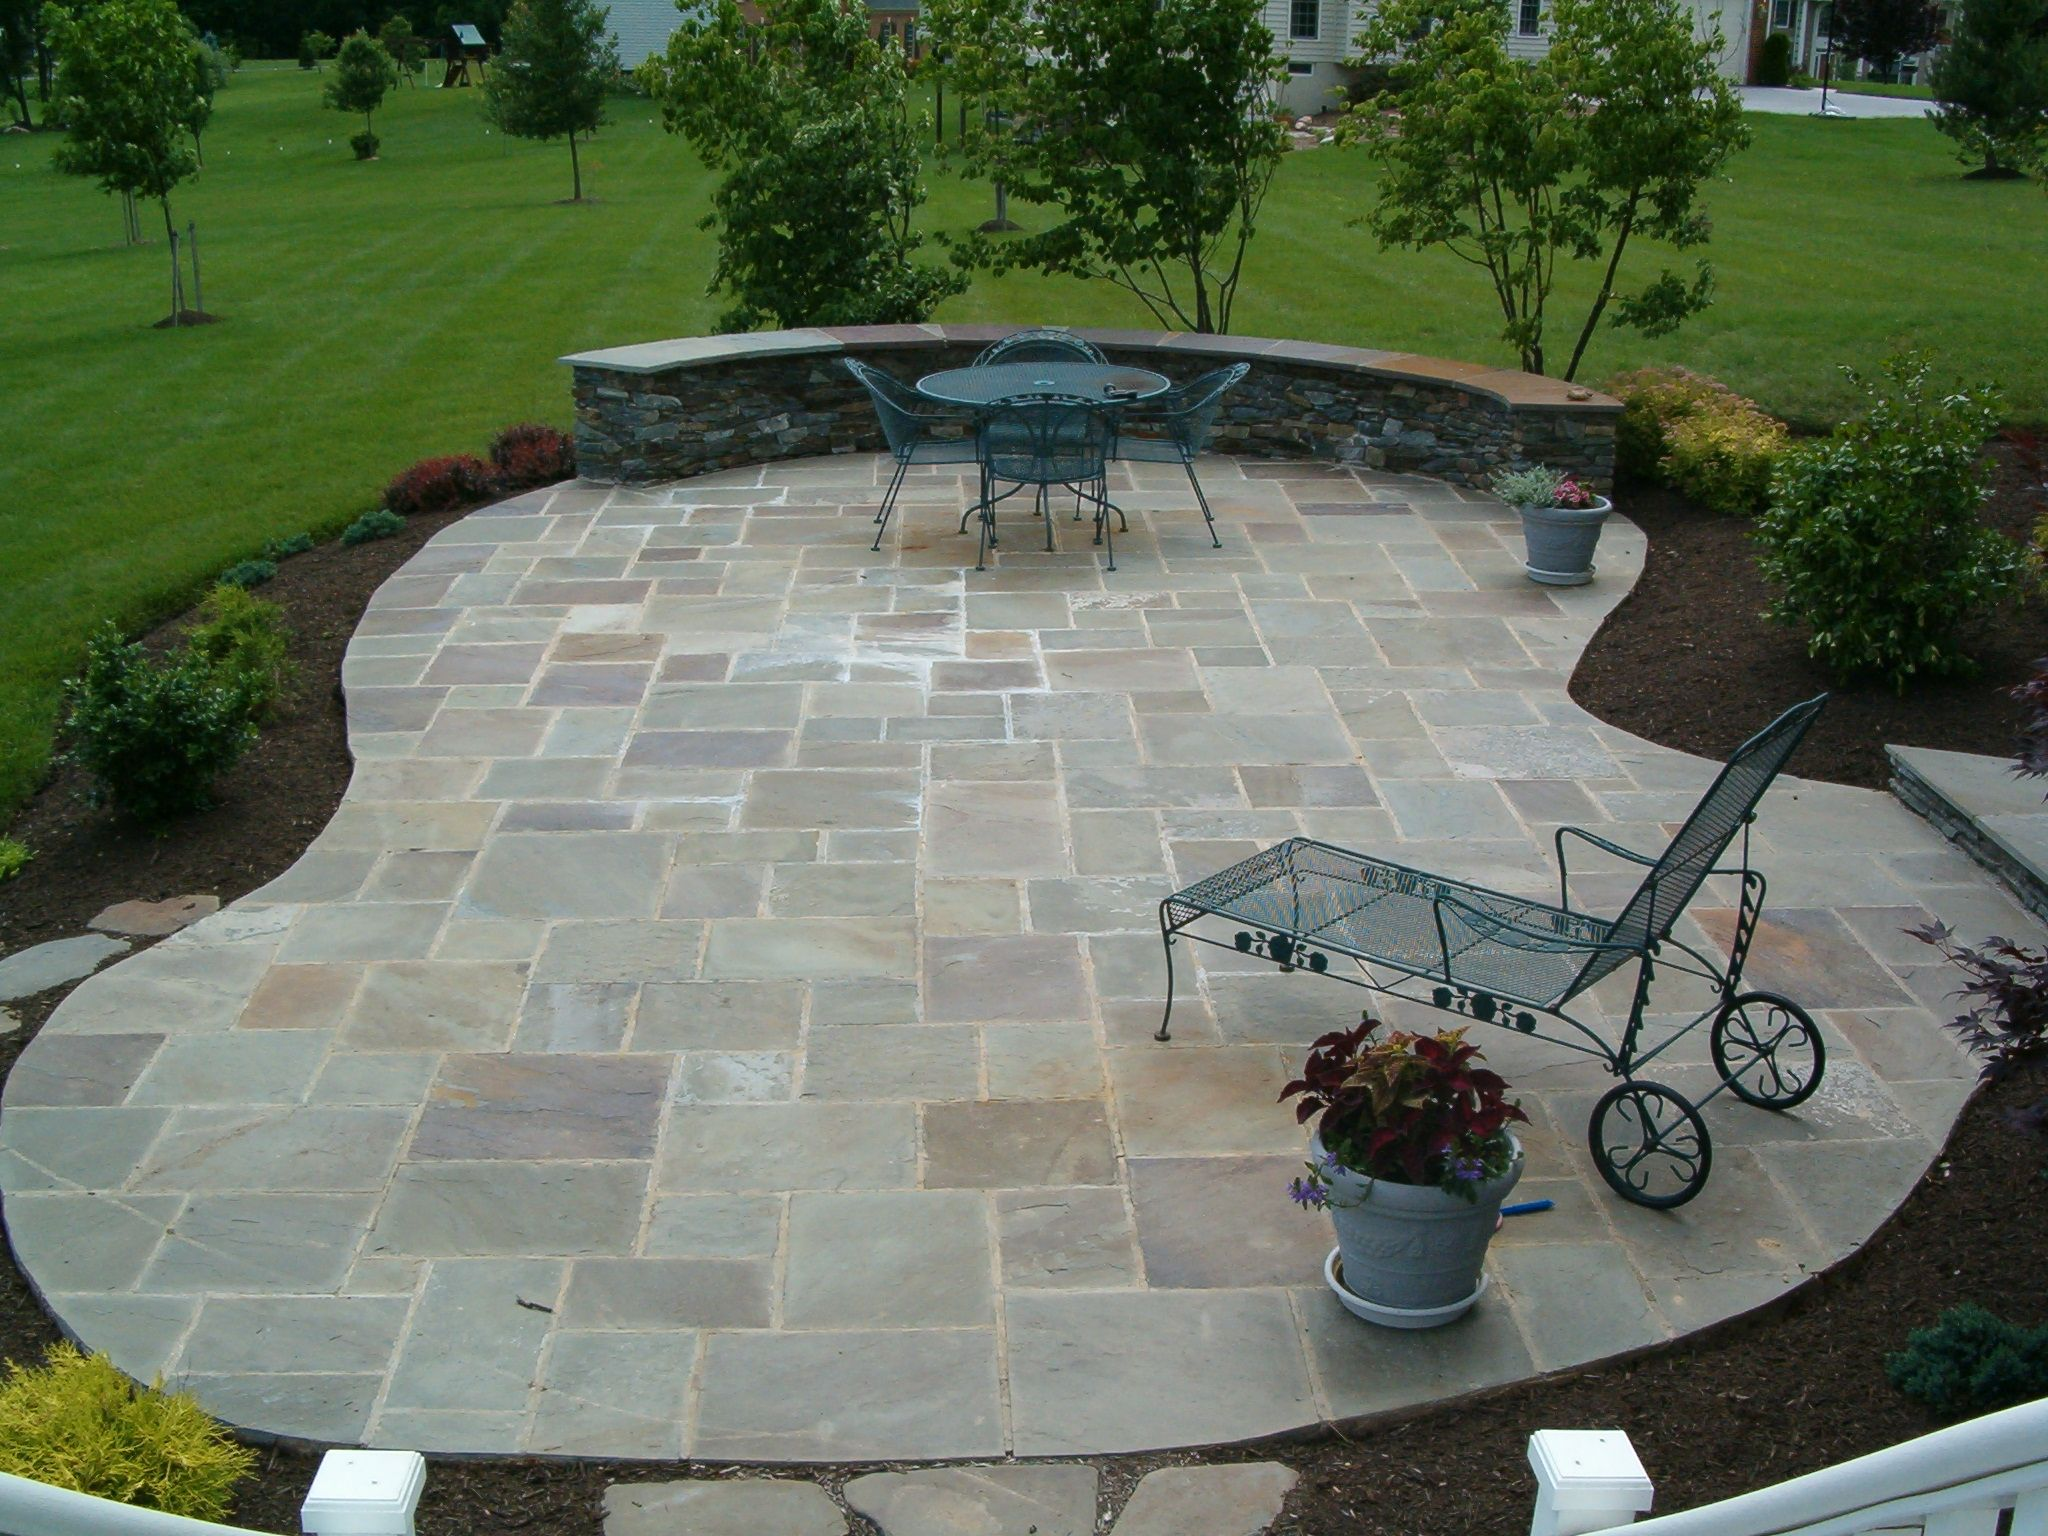 Ordinaire Stone Patio Designs Home Exterior Design Ideas With Striking Inspirational Stone  Patio Design Ideas For Garden